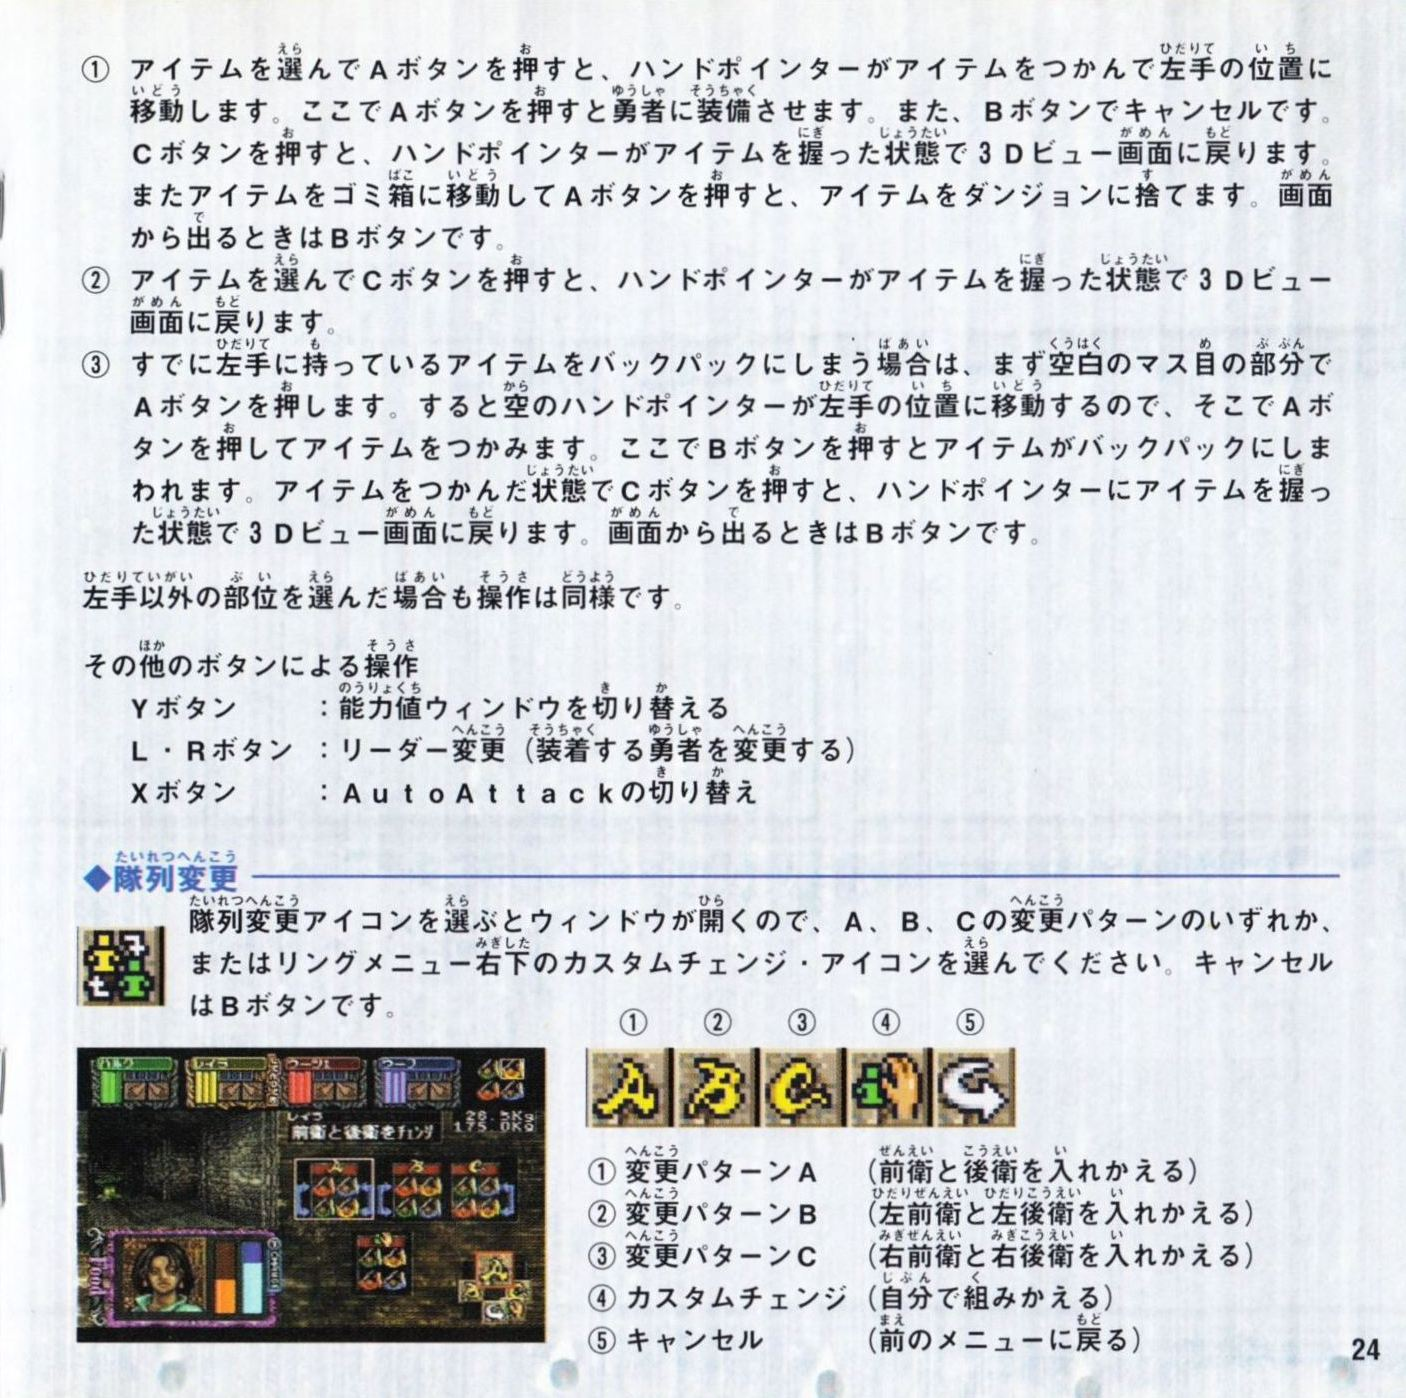 Game - Dungeon Master Nexus - JP - Sega Saturn - Booklet - Page 025 - Scan